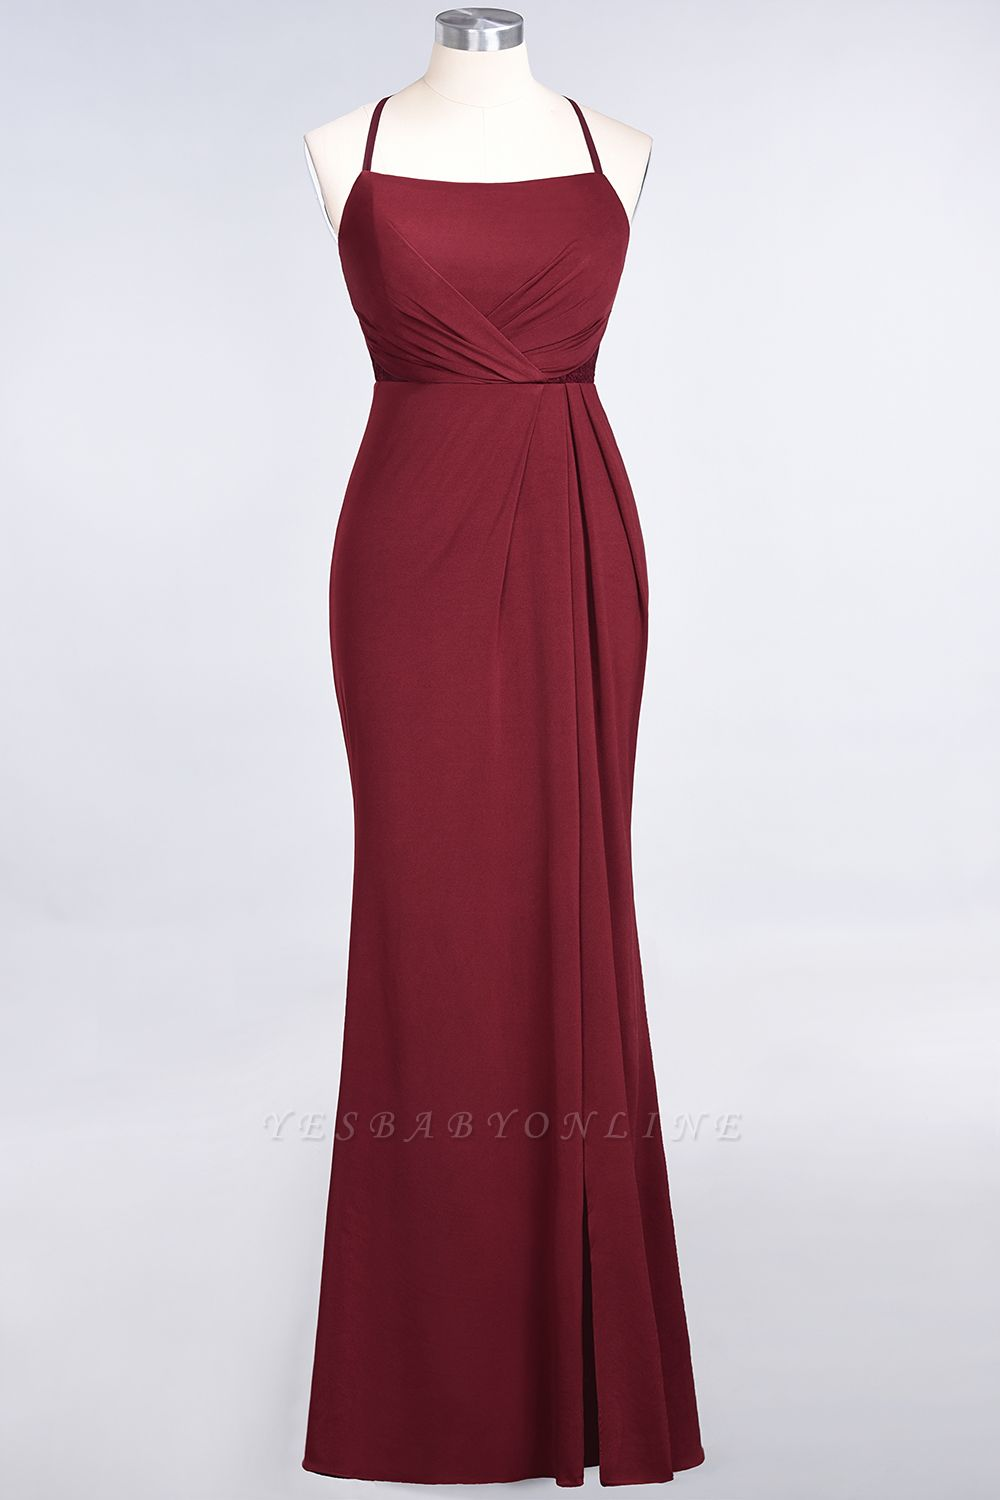 Mermaid Spaghetti-Straps Sleeveless Floor-Length spandex Lace Bridesmaid Dress with Ruffle